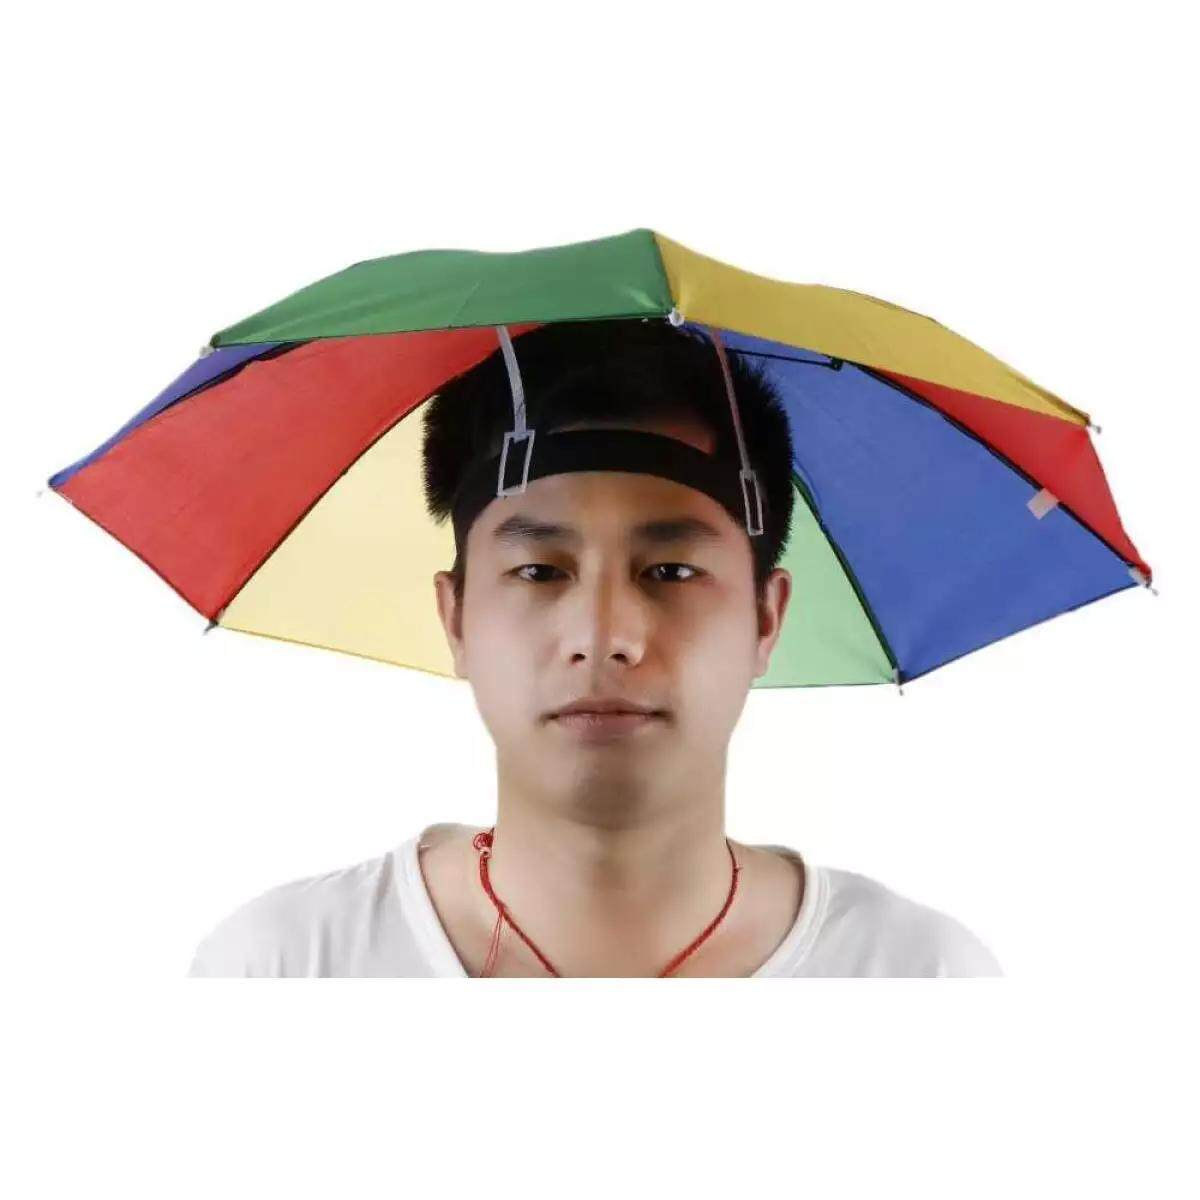 Outdoor Foldable Sun Umbrella Hat Golf Fish Camp Headwear Cap Head Hats Shade(multiple Colour) By Cenblue.